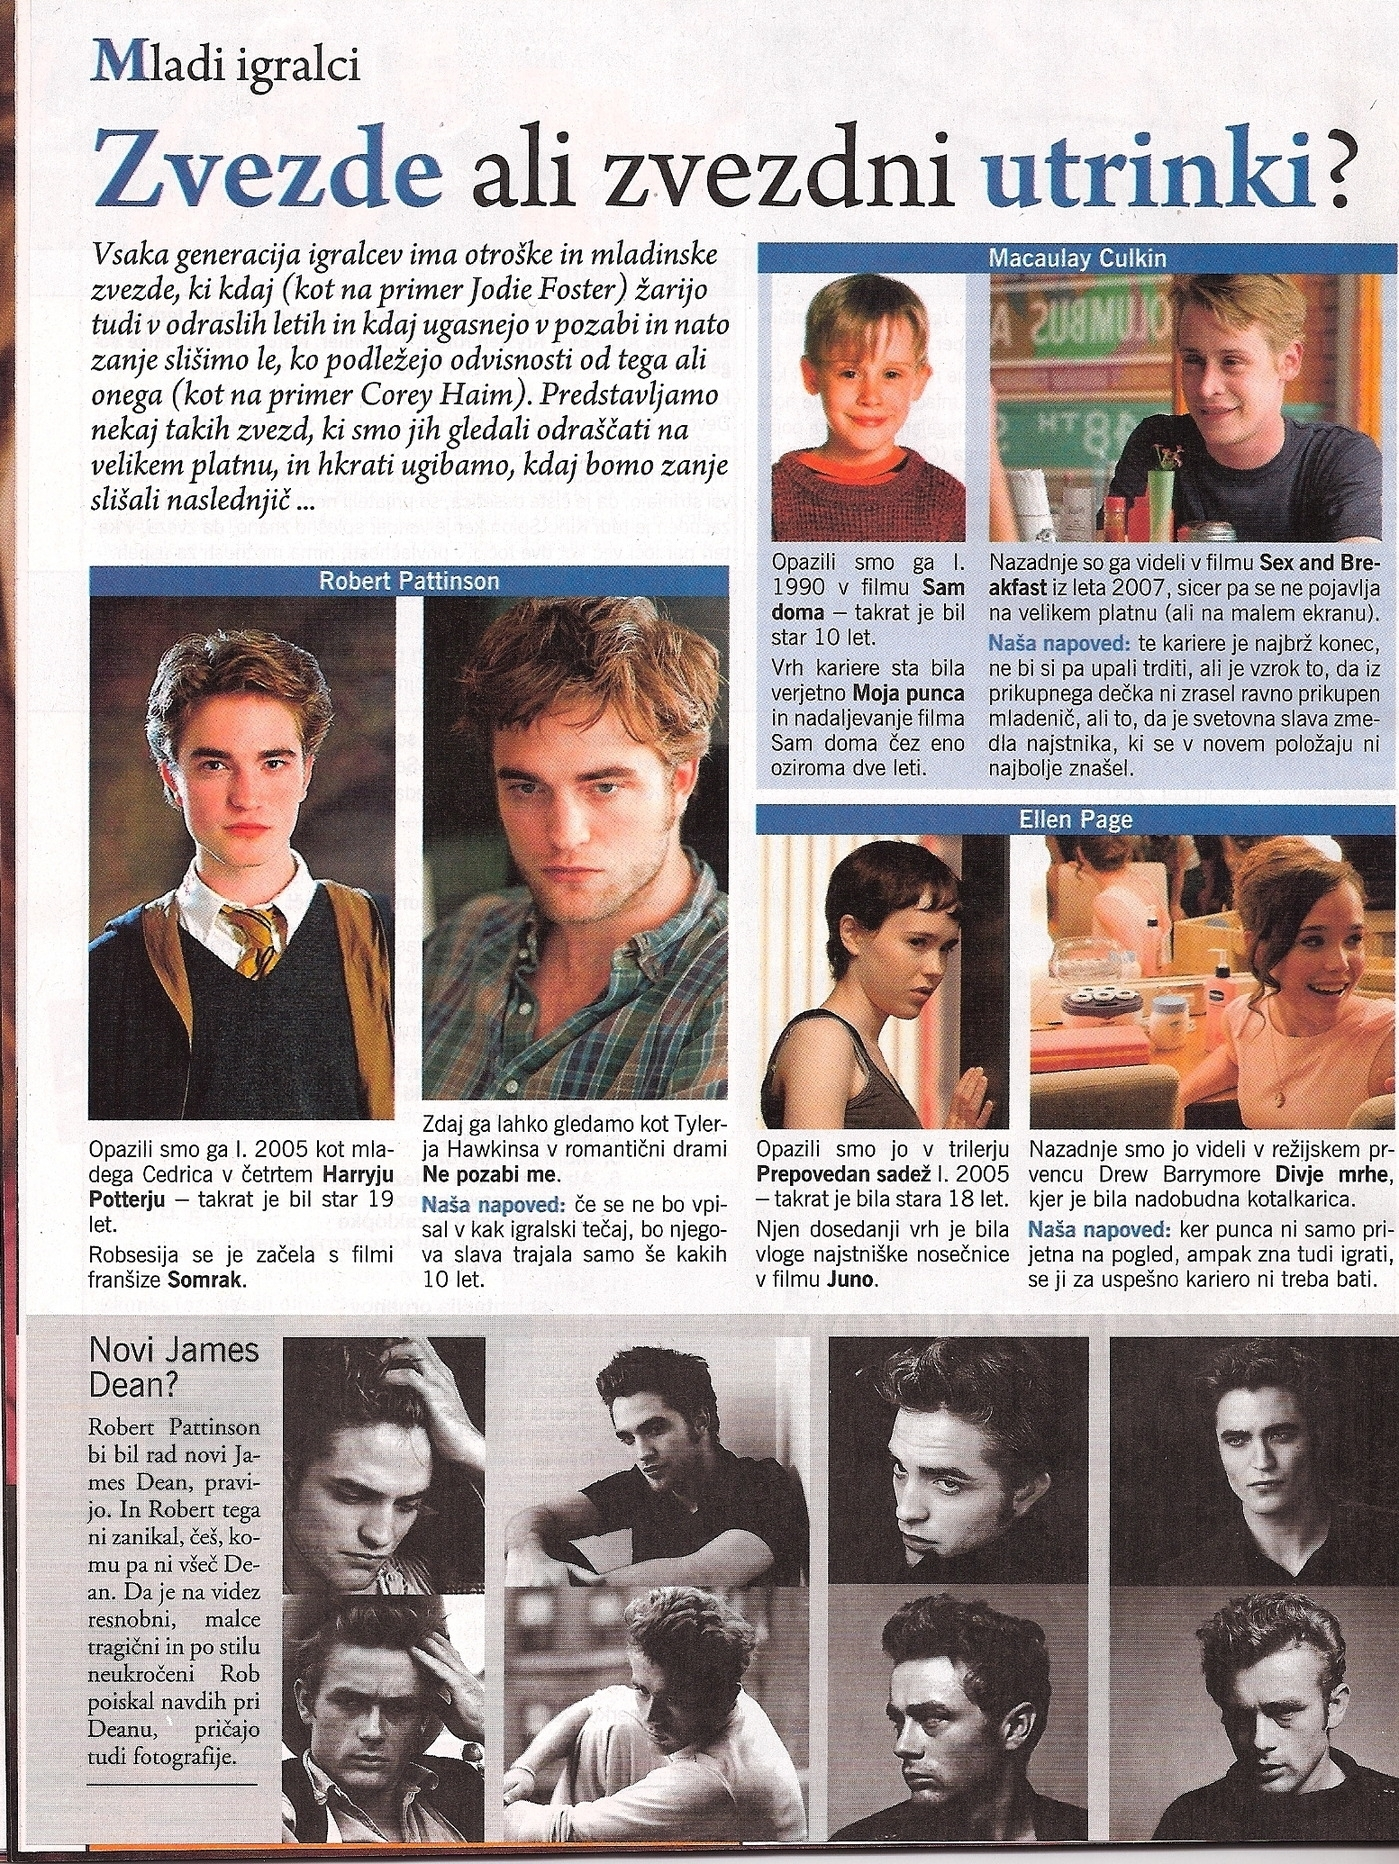 Robert Pattinson: Vikend (Eslovênia), Abril 2010